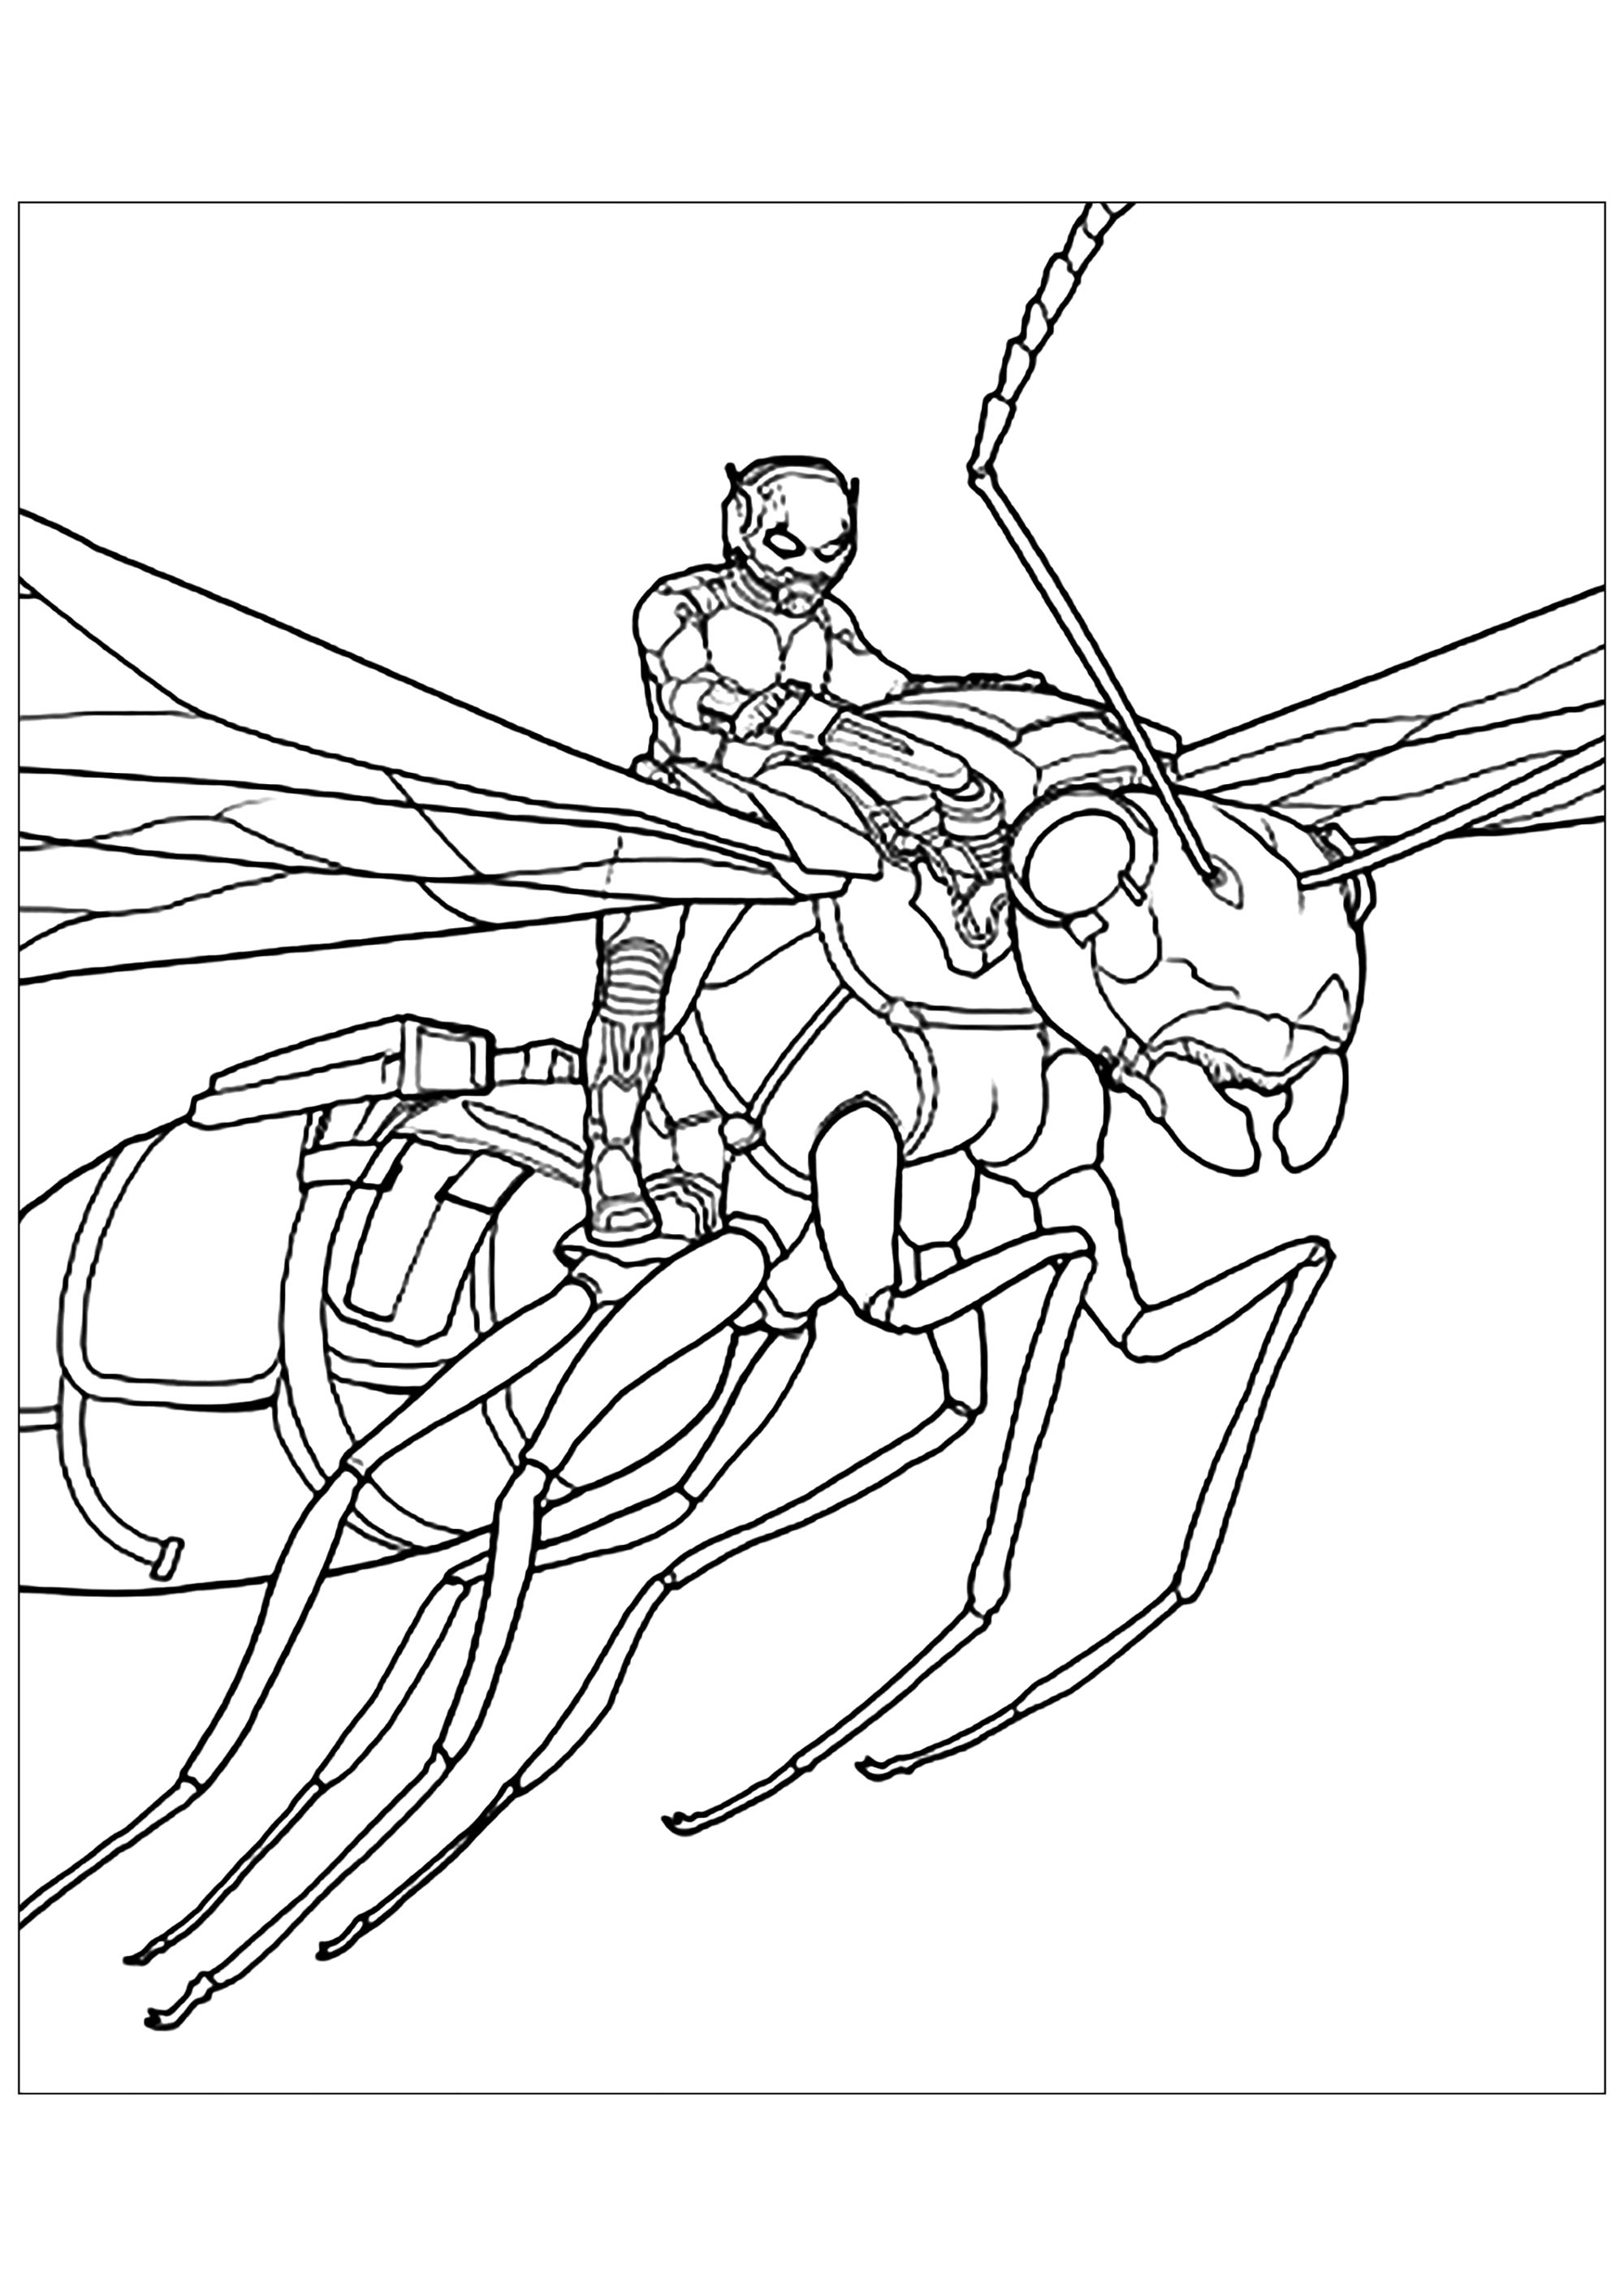 Smiling Ant coloring page | Free Printable Coloring Pages | 2828x2000